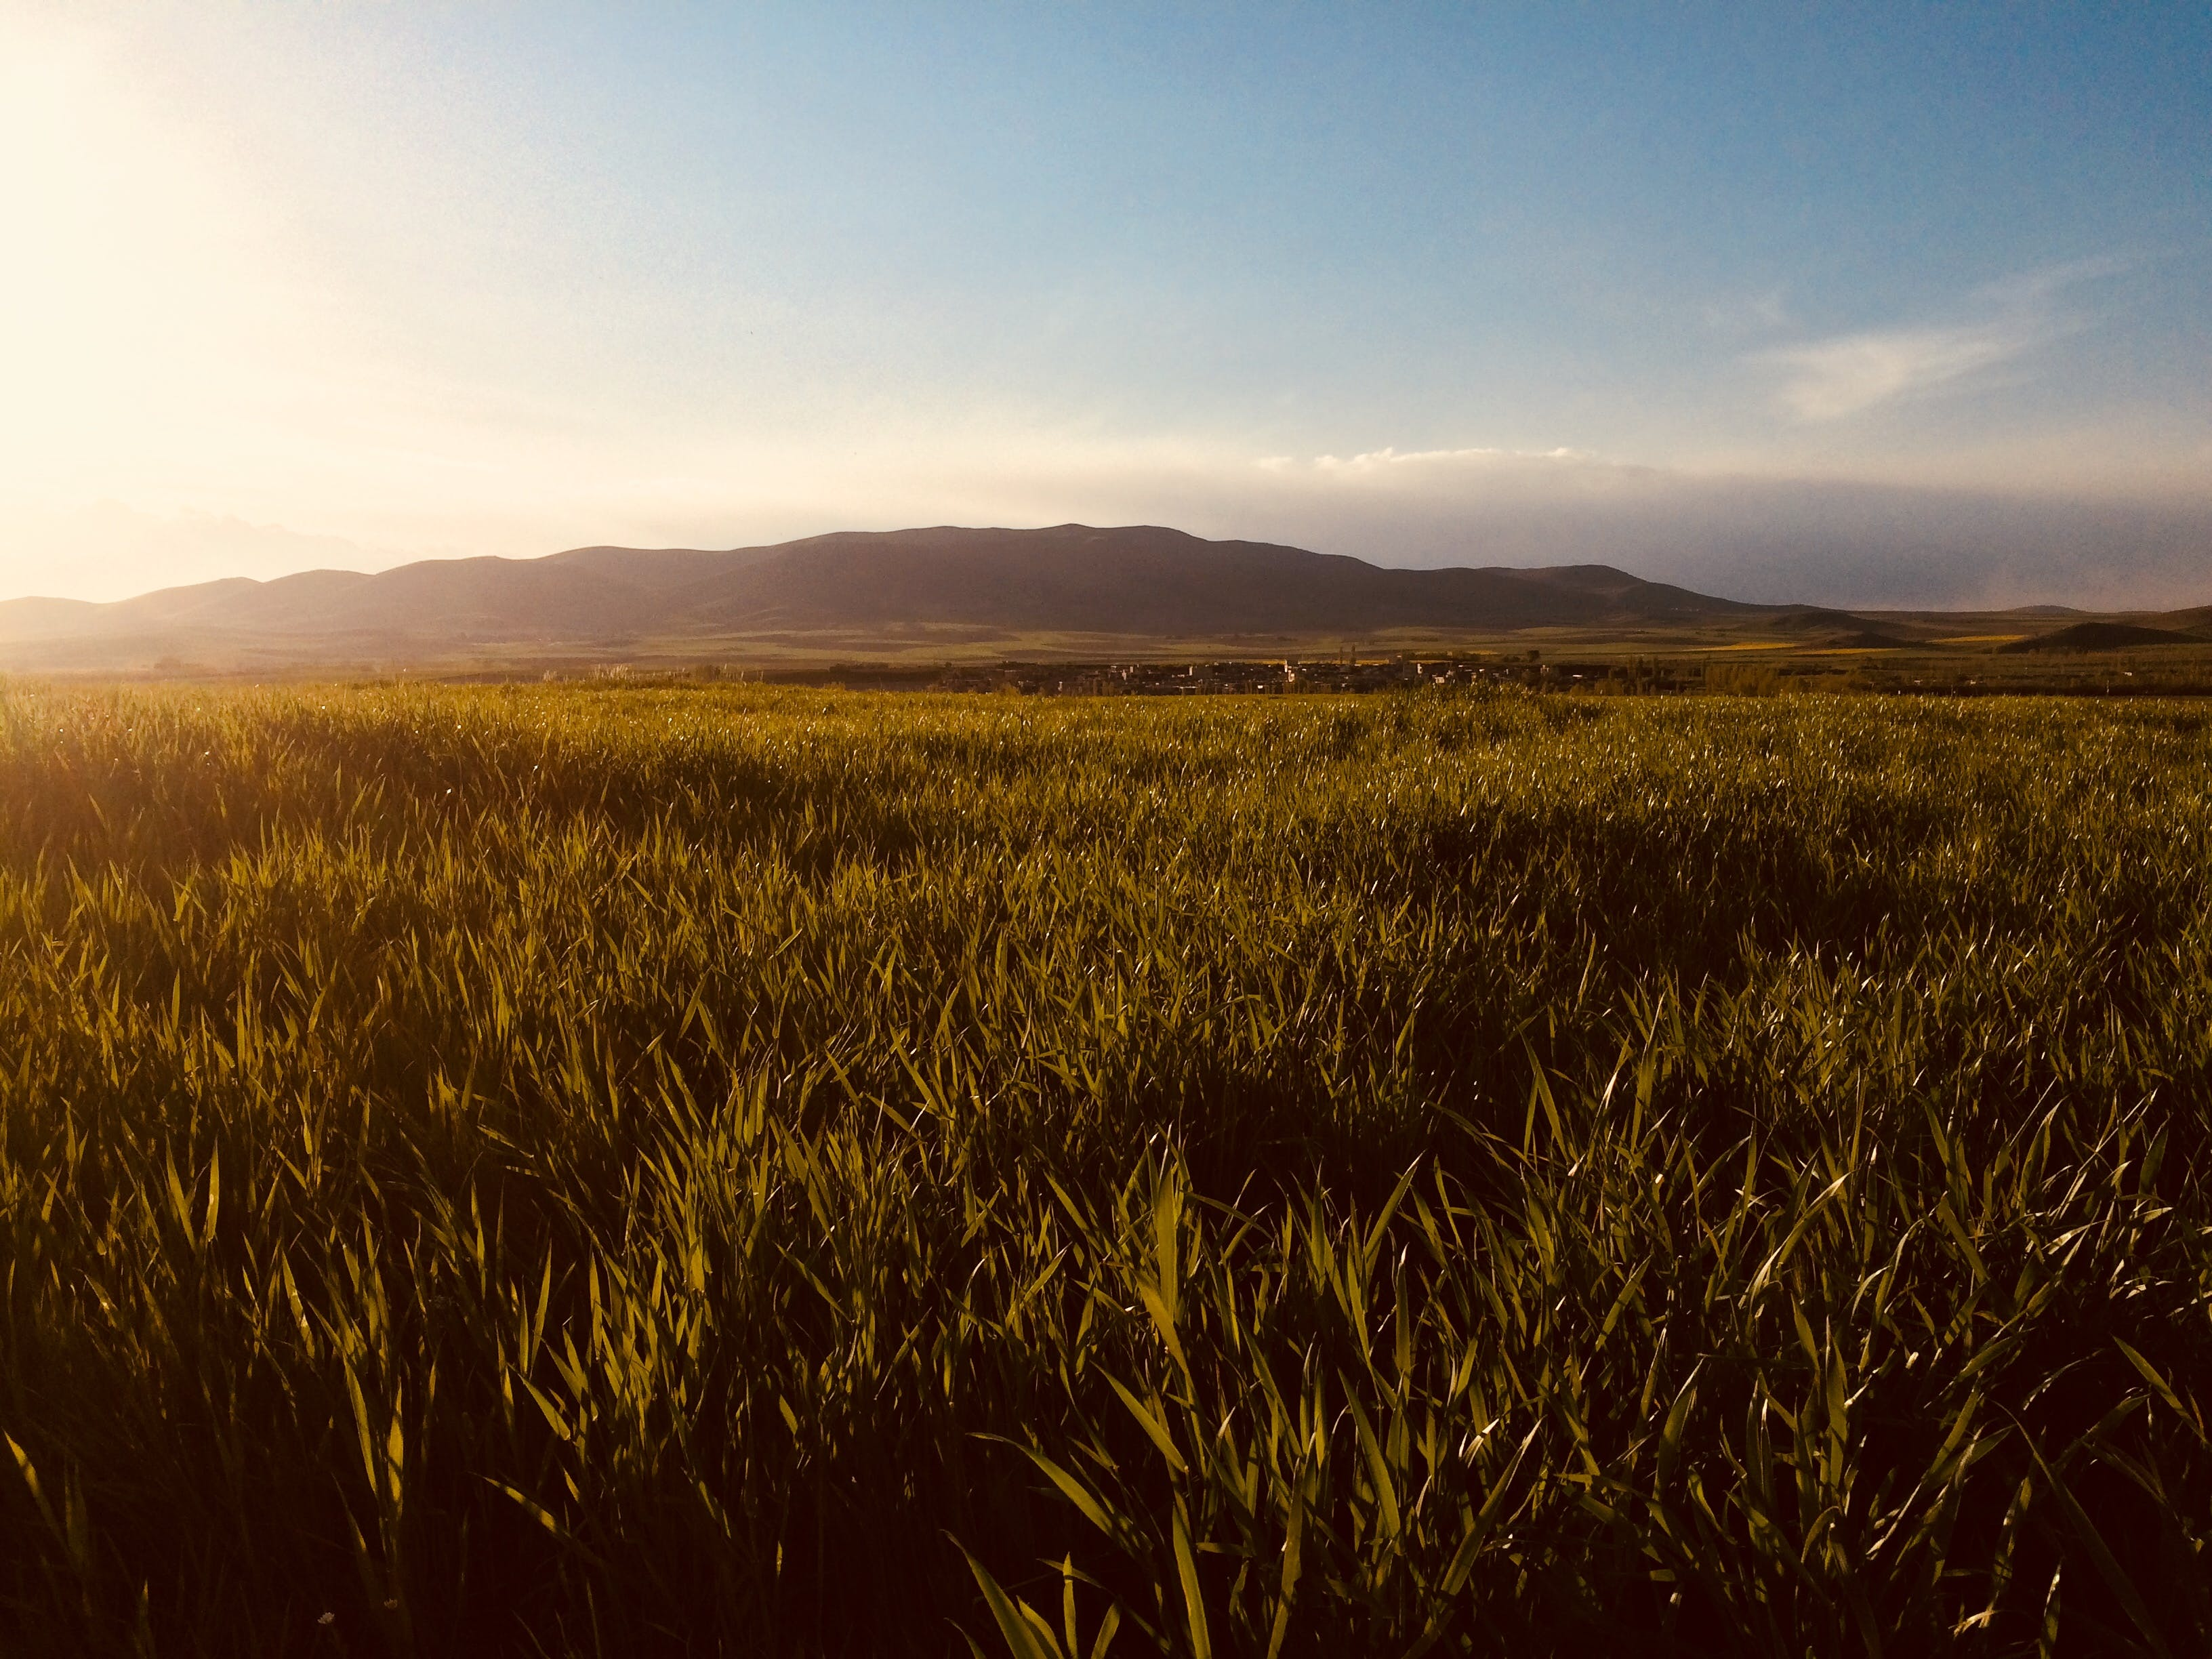 Vast Green Grass Fields With Silhouette of Mountain at Distance